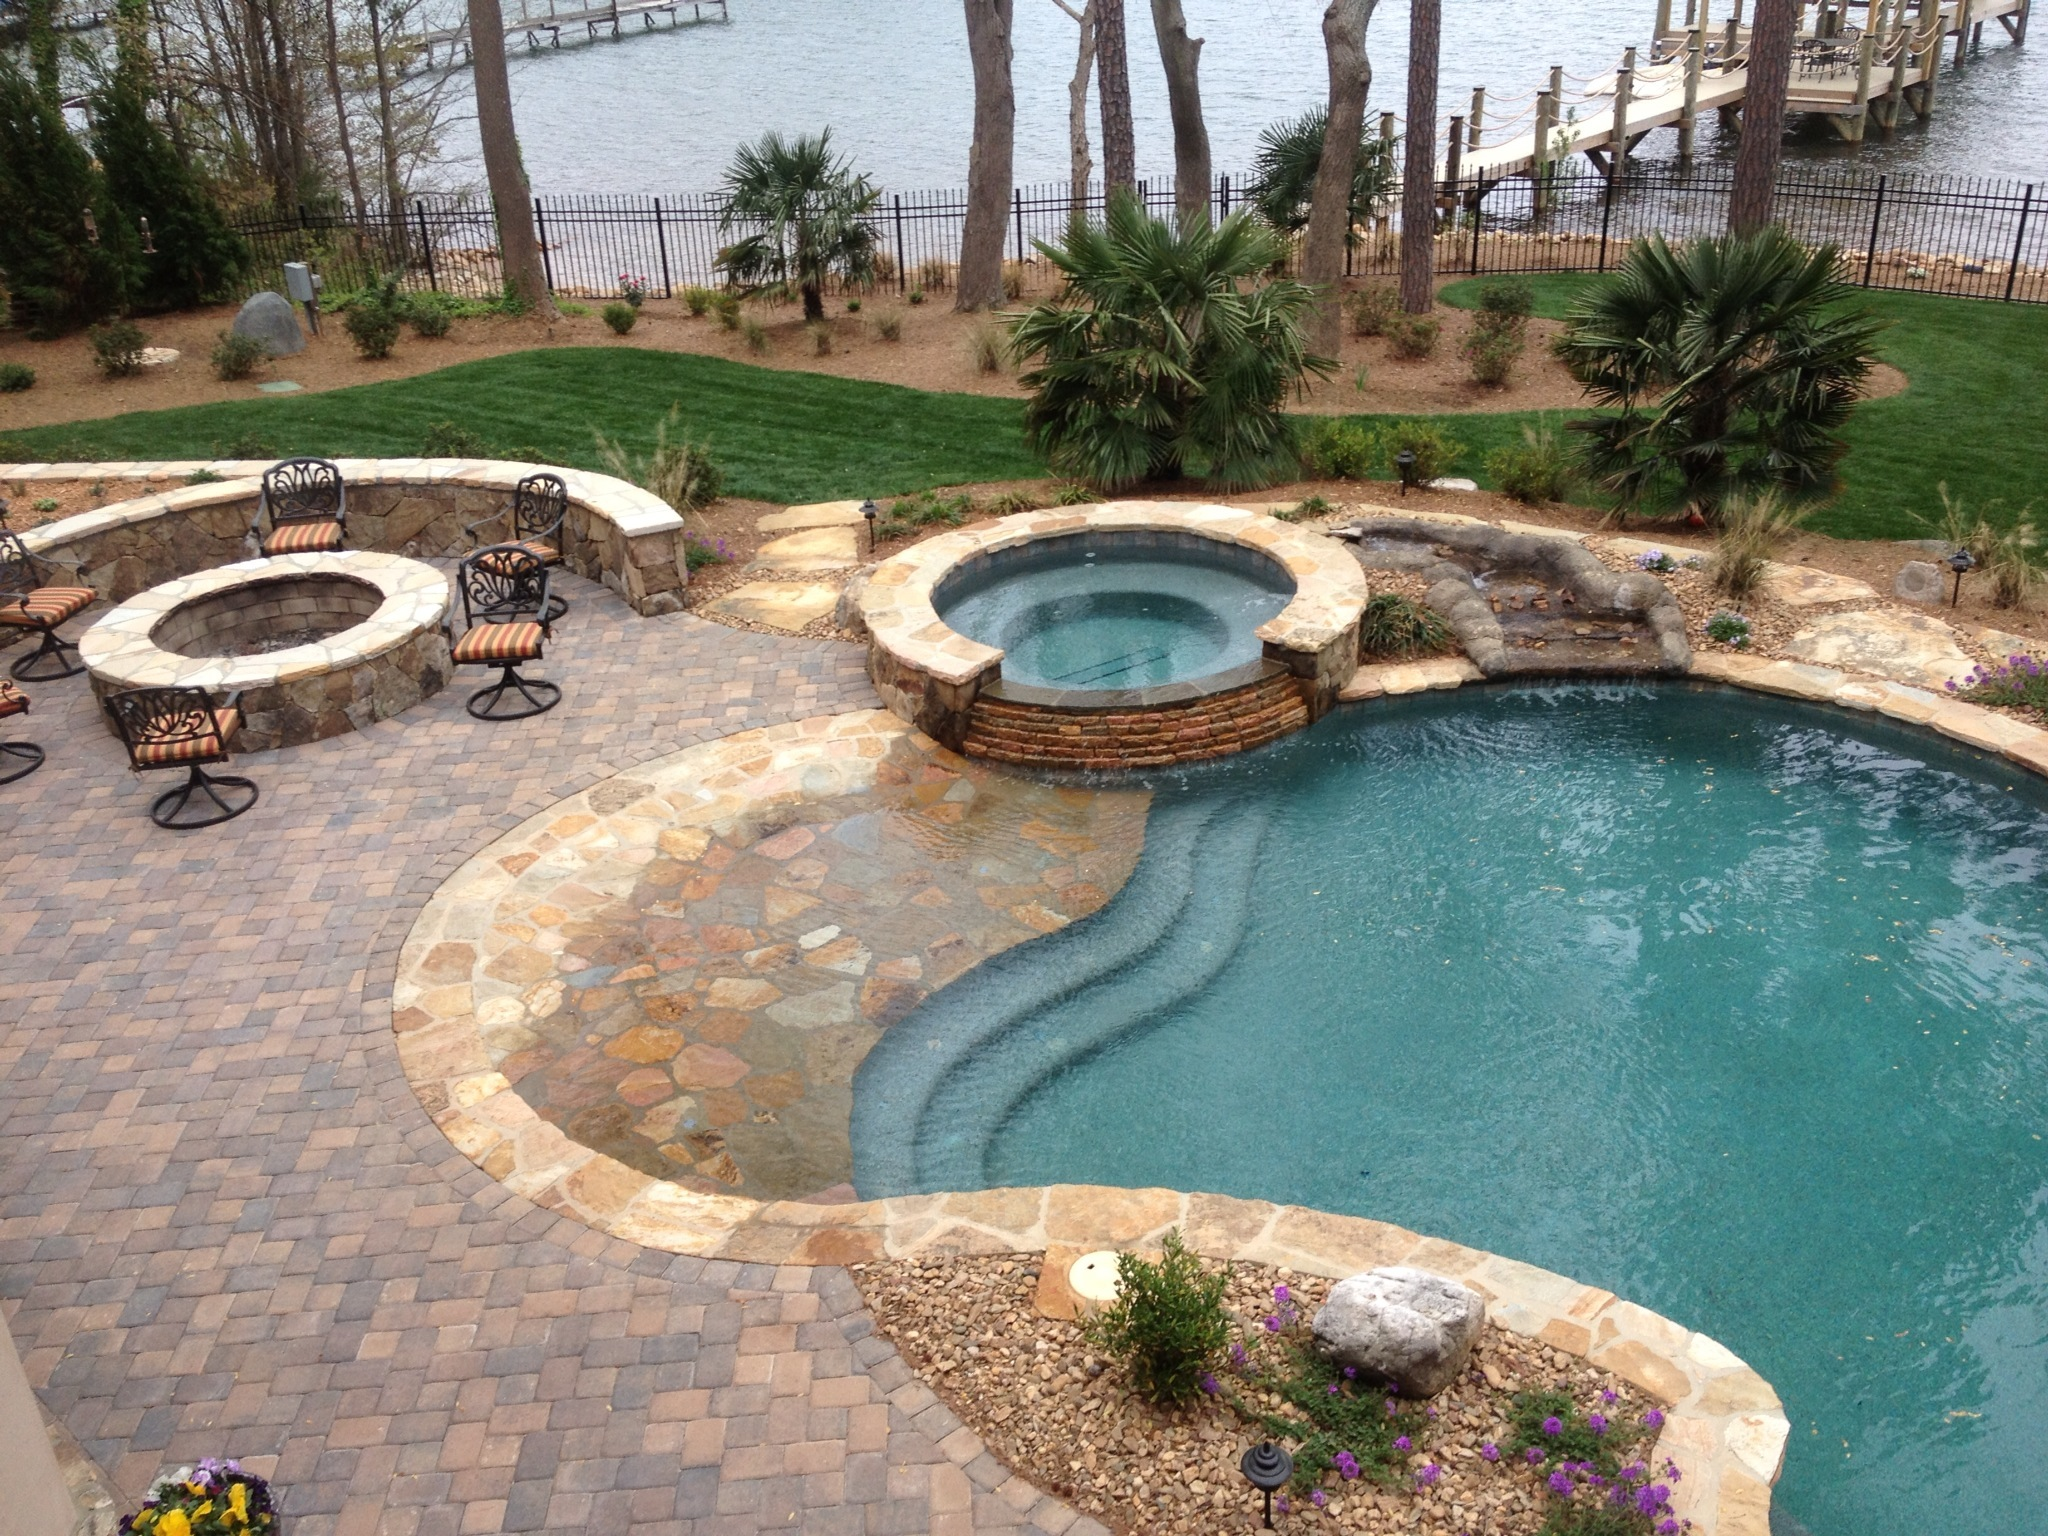 how much does a pedicure chair cost arm covers for sale to build swimming pool charlotte builder